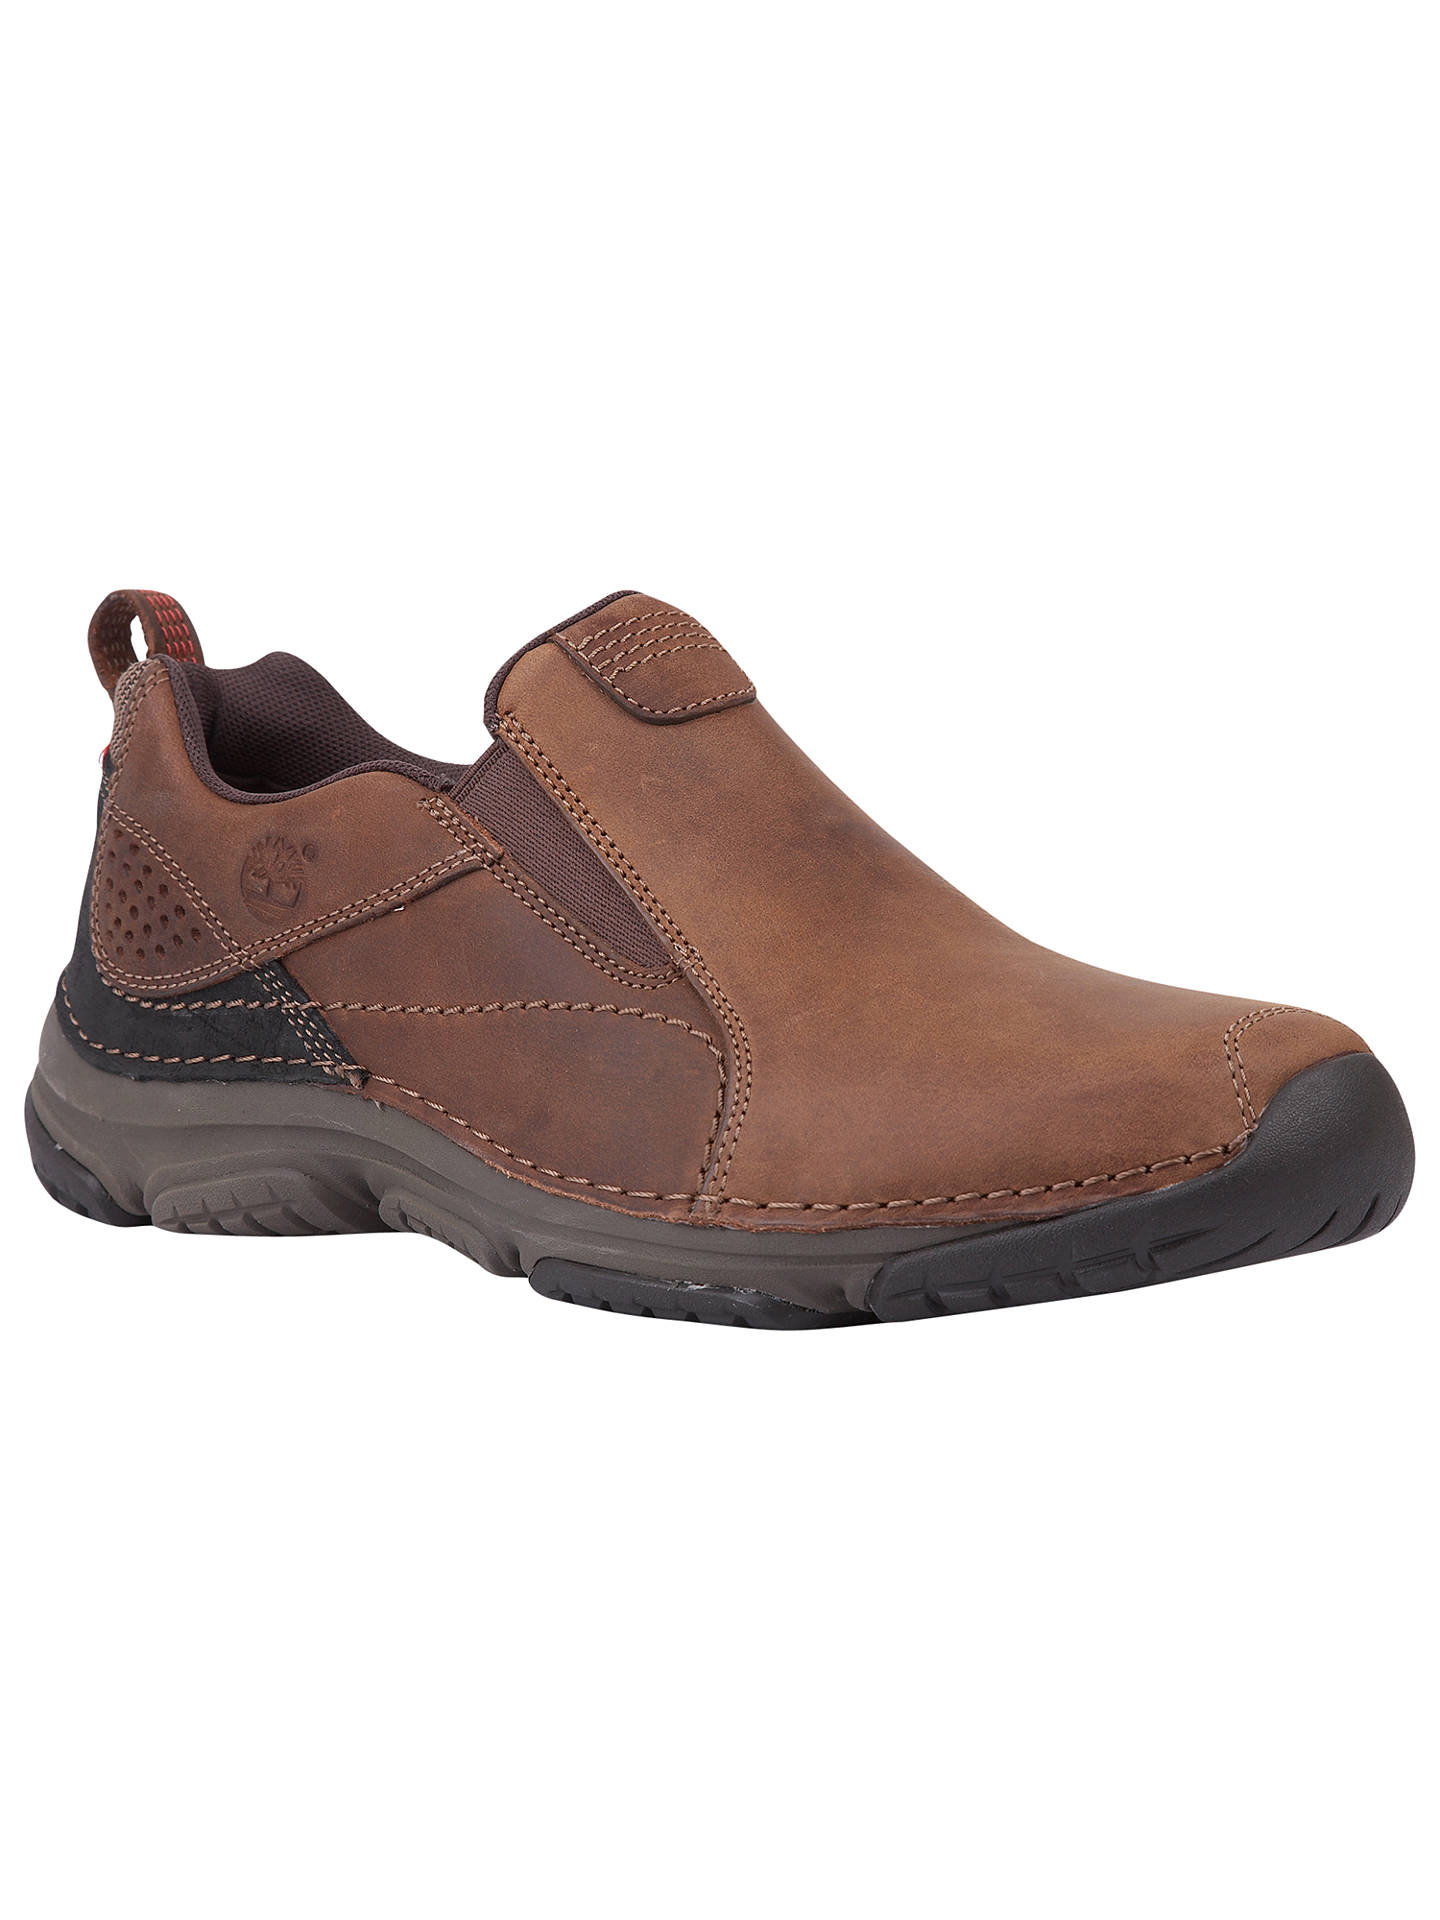 2099e9282f22 Buy Timberland Front Country Leather Slip On Shoes